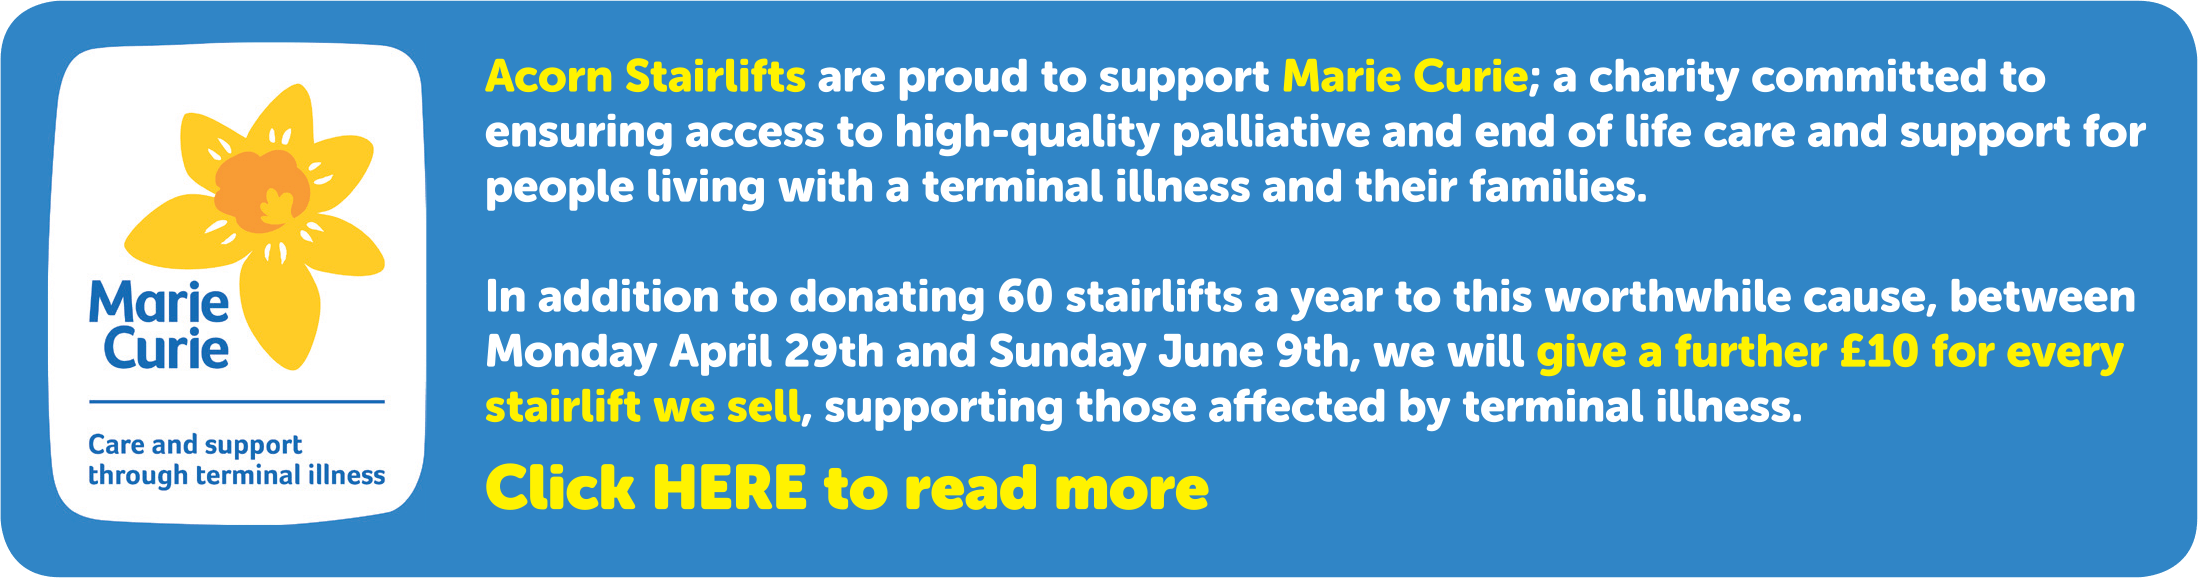 Acorn stairlifts are proud to support Marie Curie